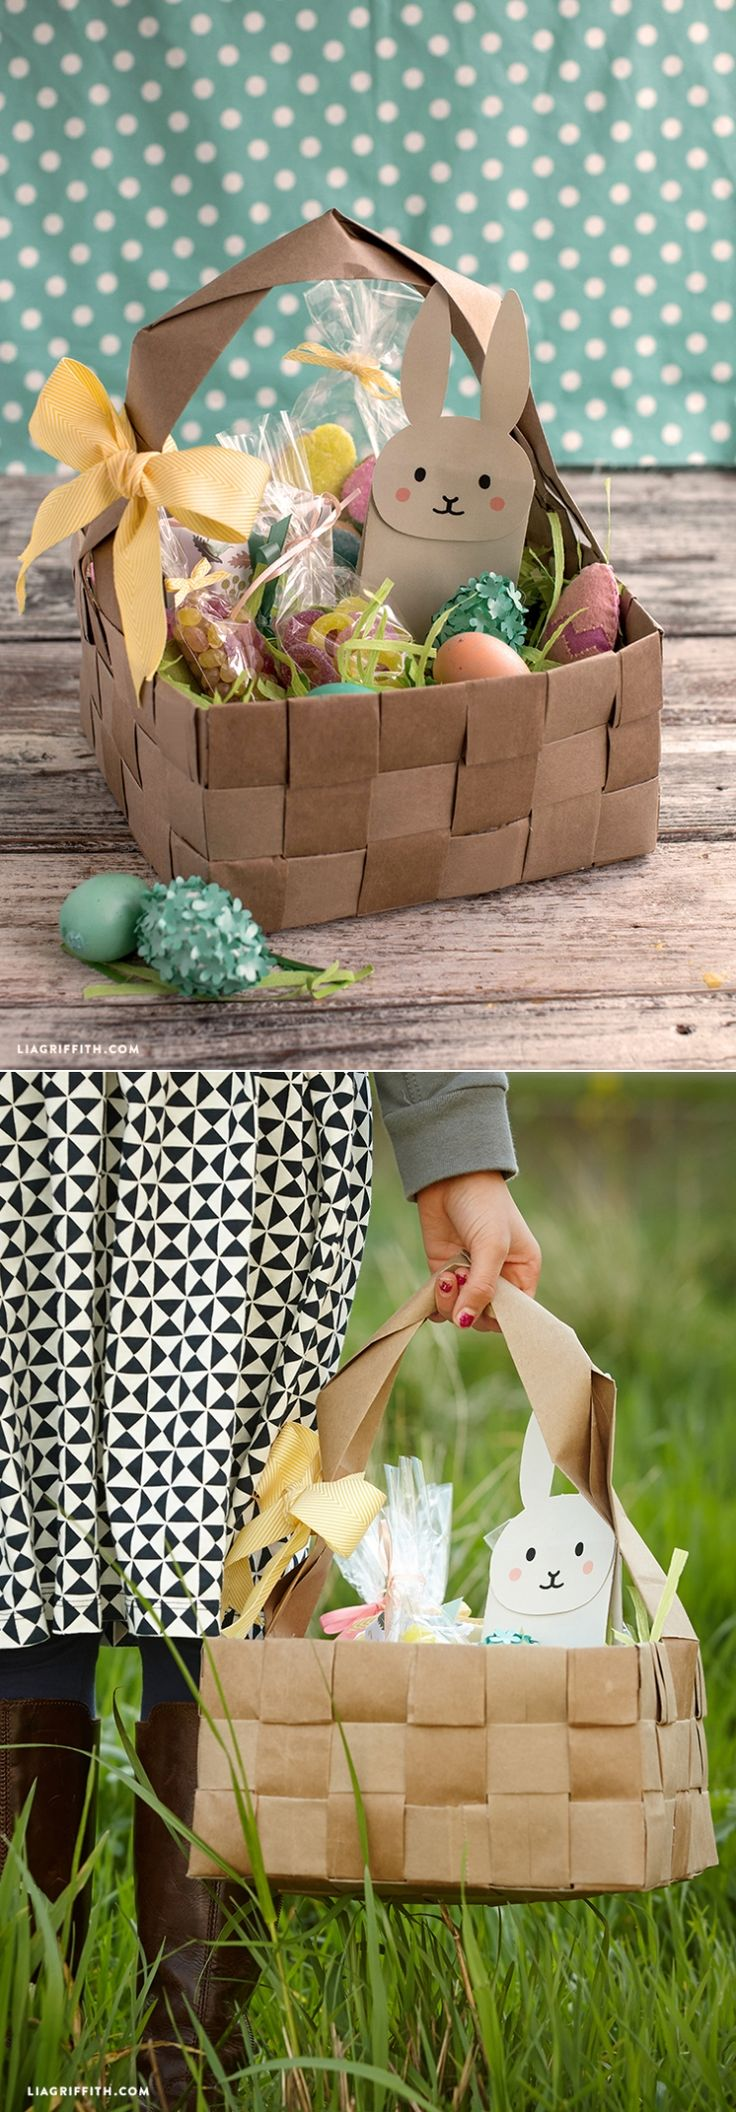 130 best diy easter images on pinterest build your own craft and upcycled large diy easter basket negle